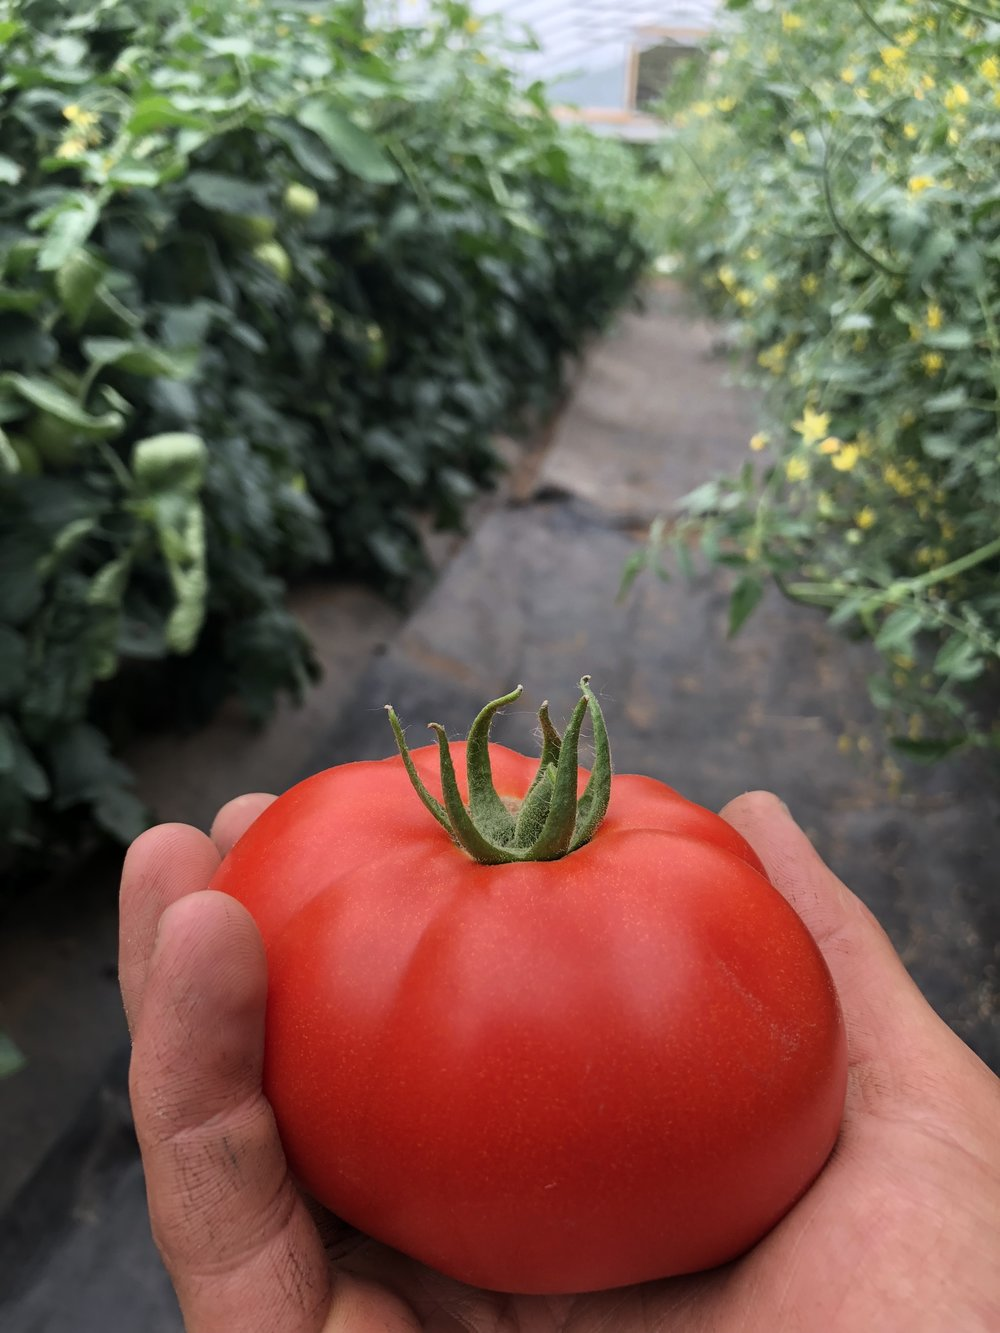 A red beefsteak tomato ripe for the picking.